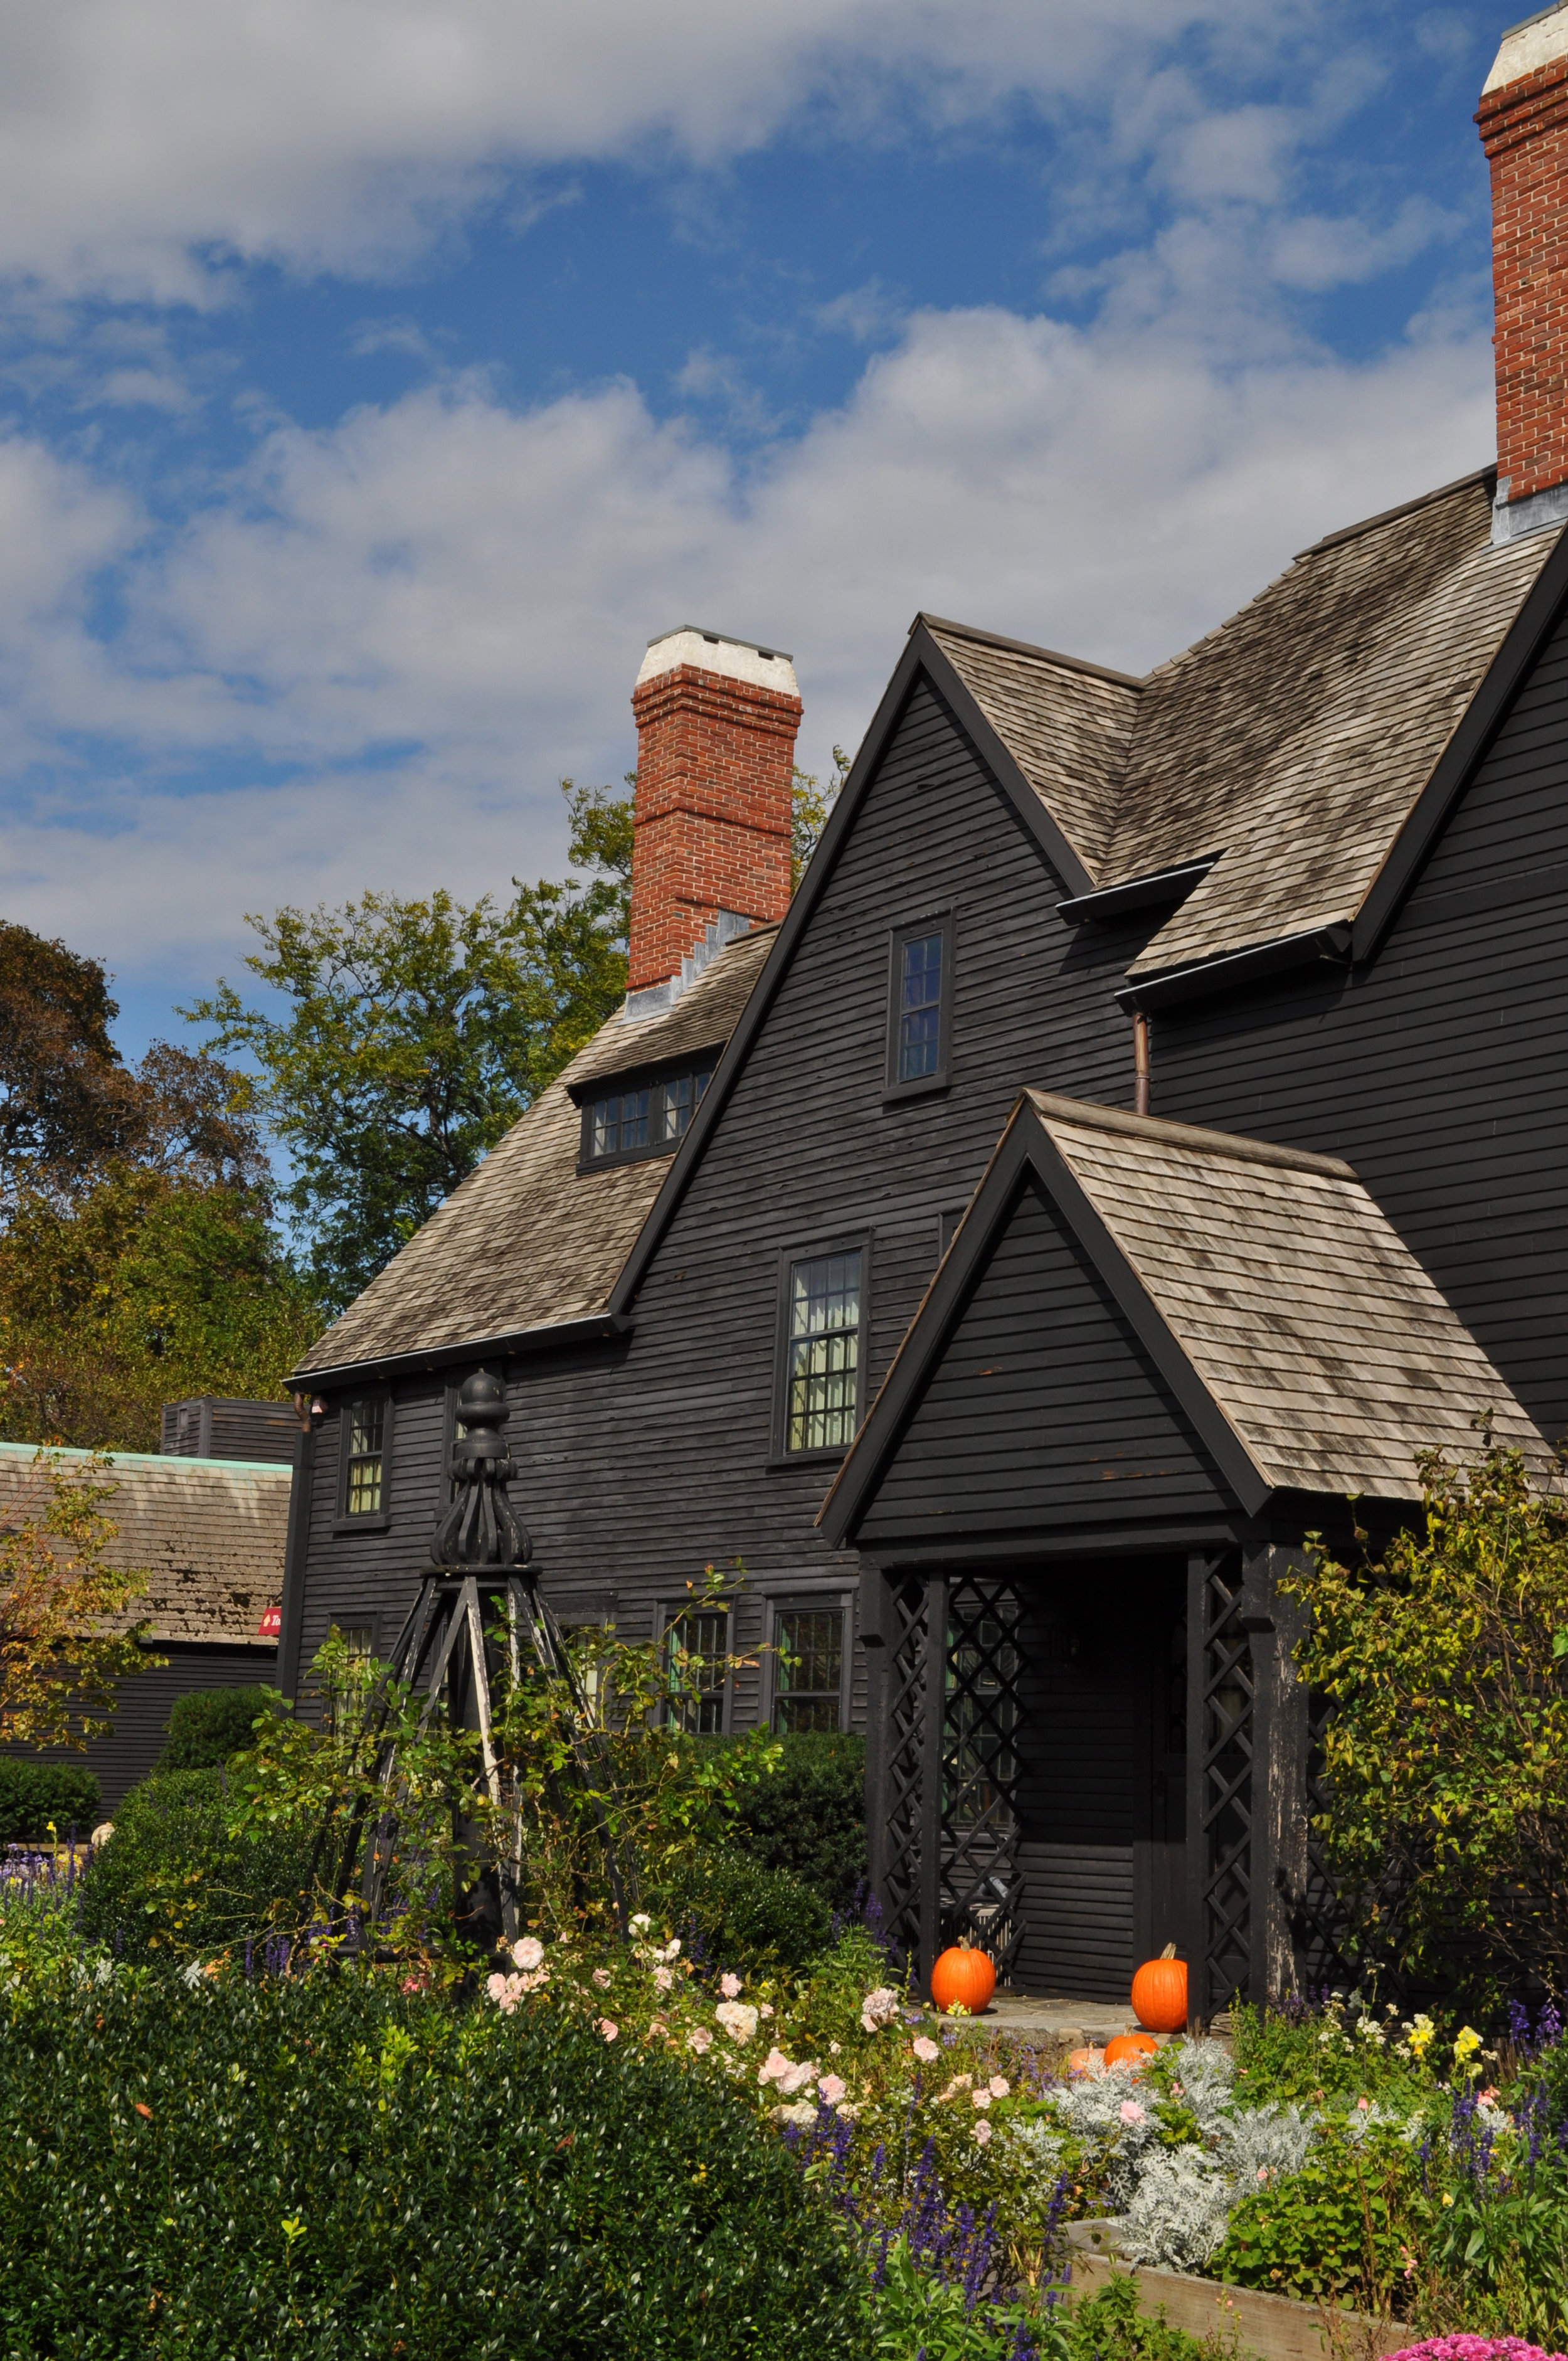 the home in the fall via The House of Seven Gables - Salem, MA